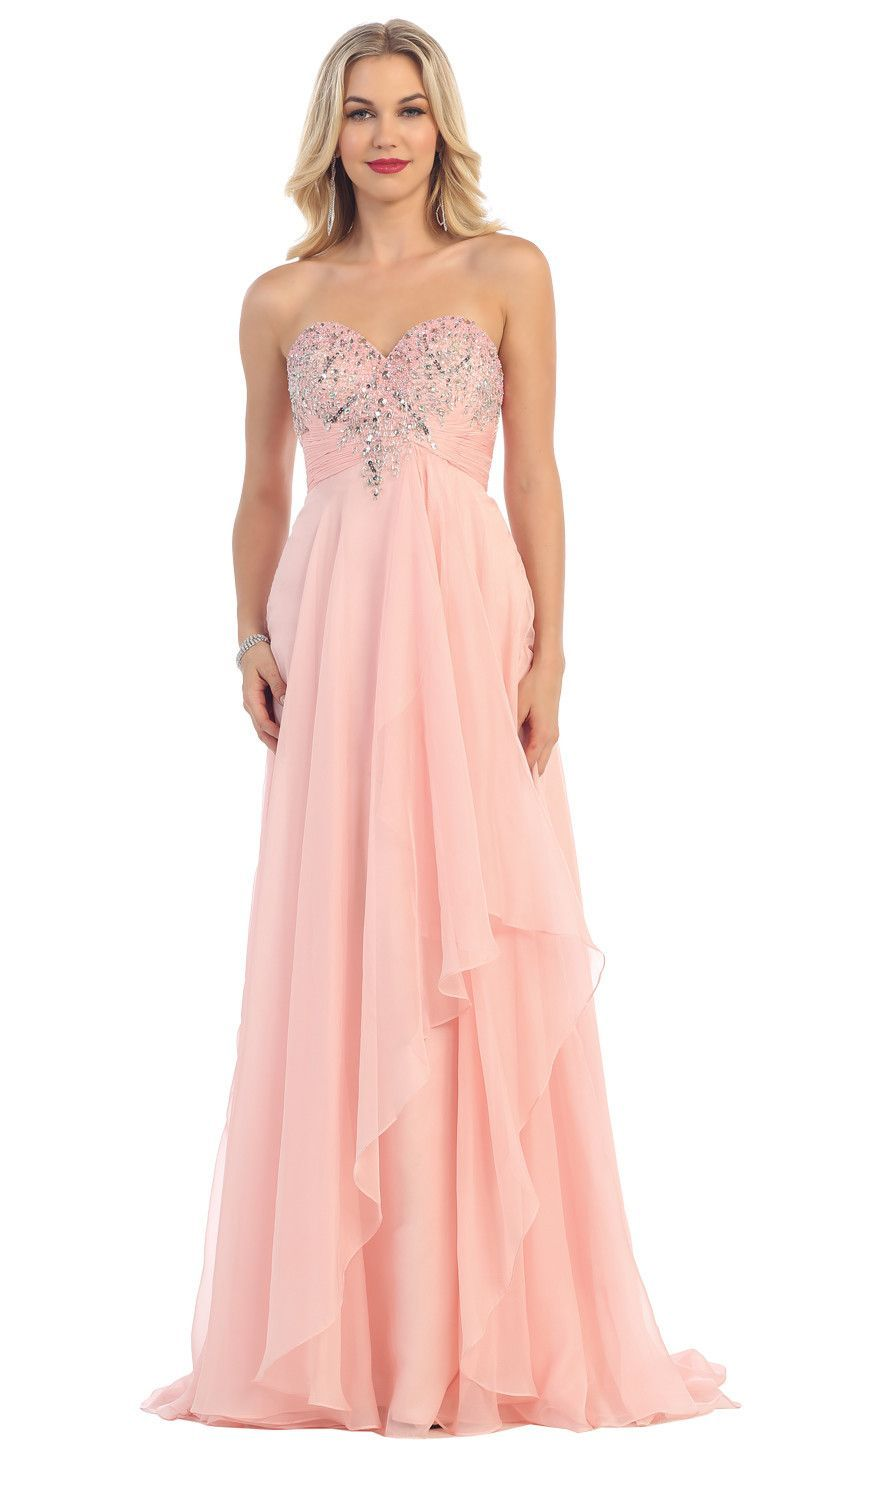 Long Prom Dress Evening Plus Size Formal 2018 | Pinterest